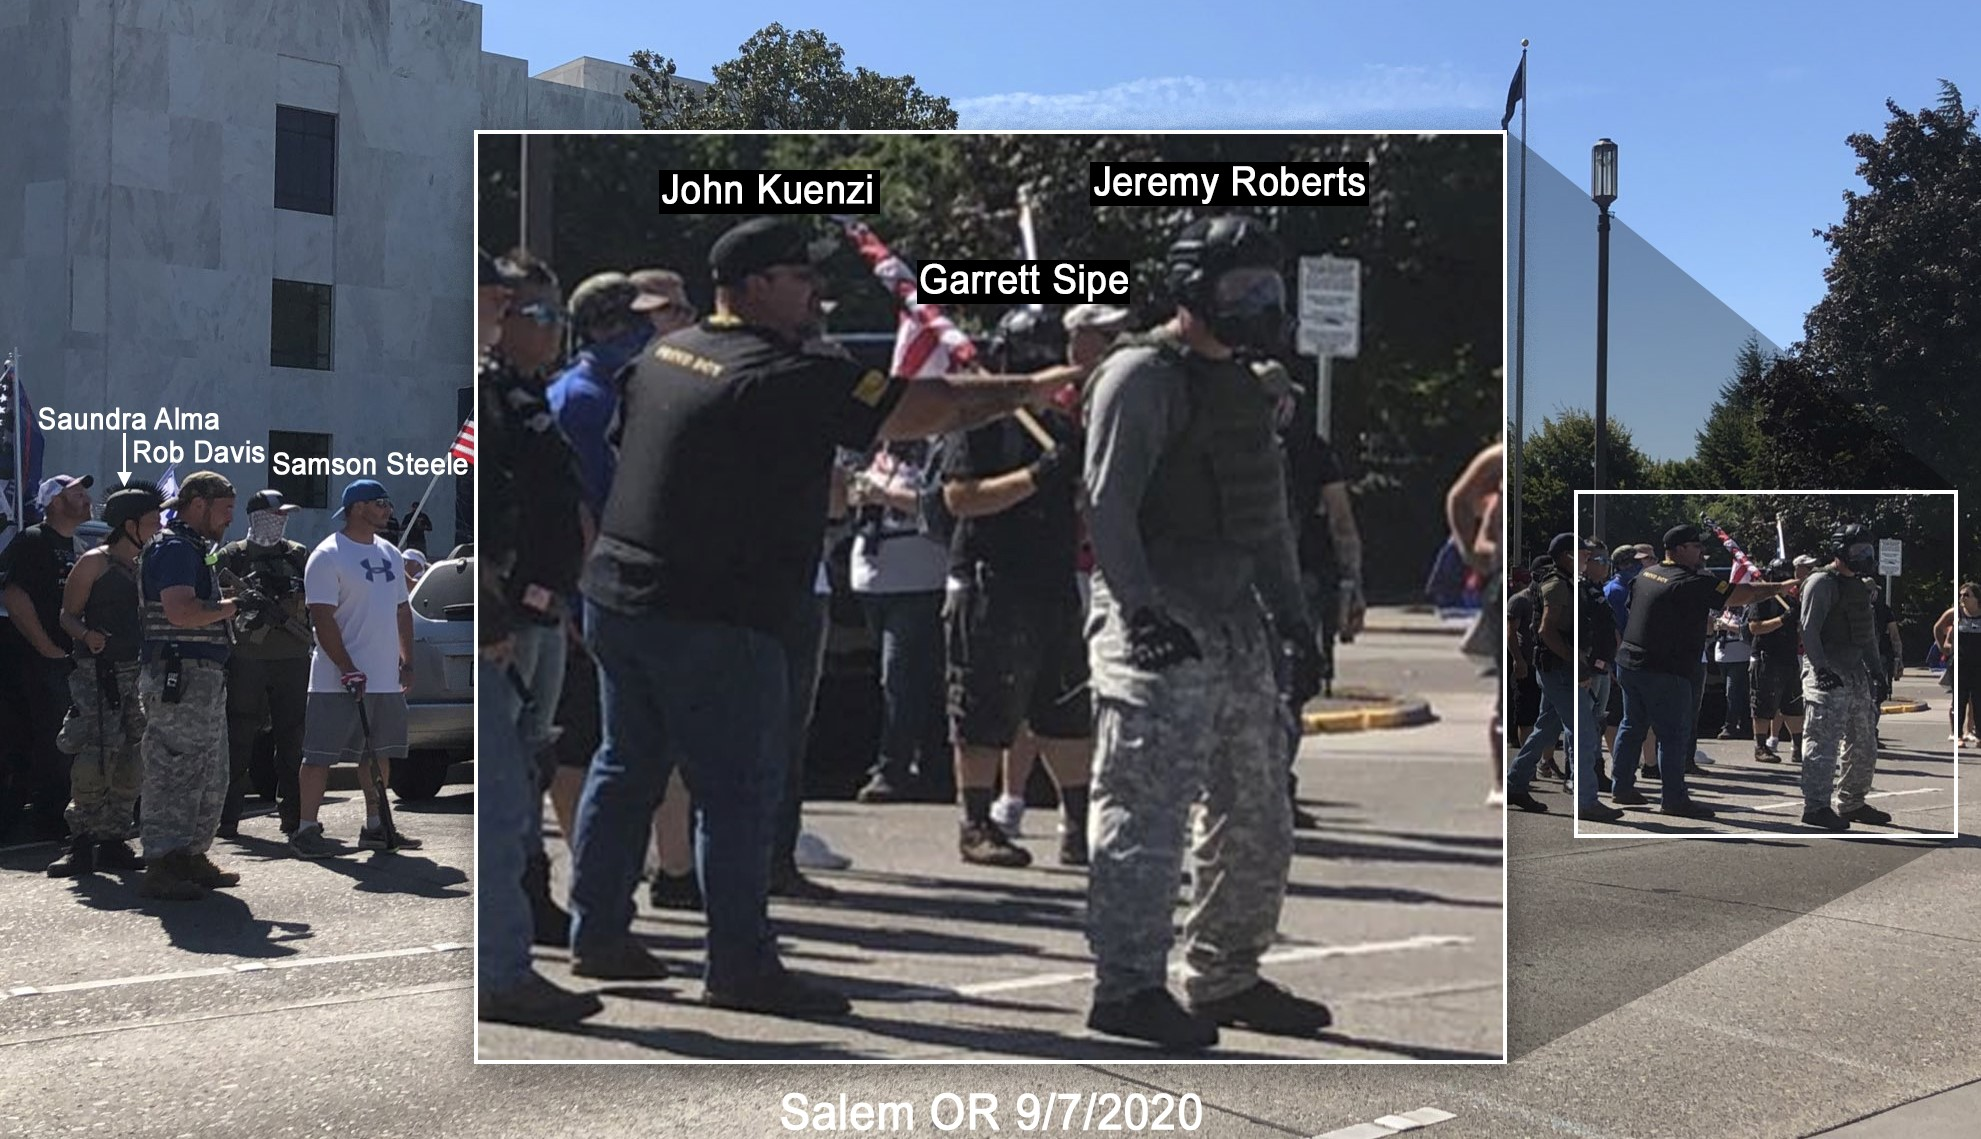 Garrett Sipe stands with other members of the Proud Boys hate group on September 7 2020, at the Oregon state capital